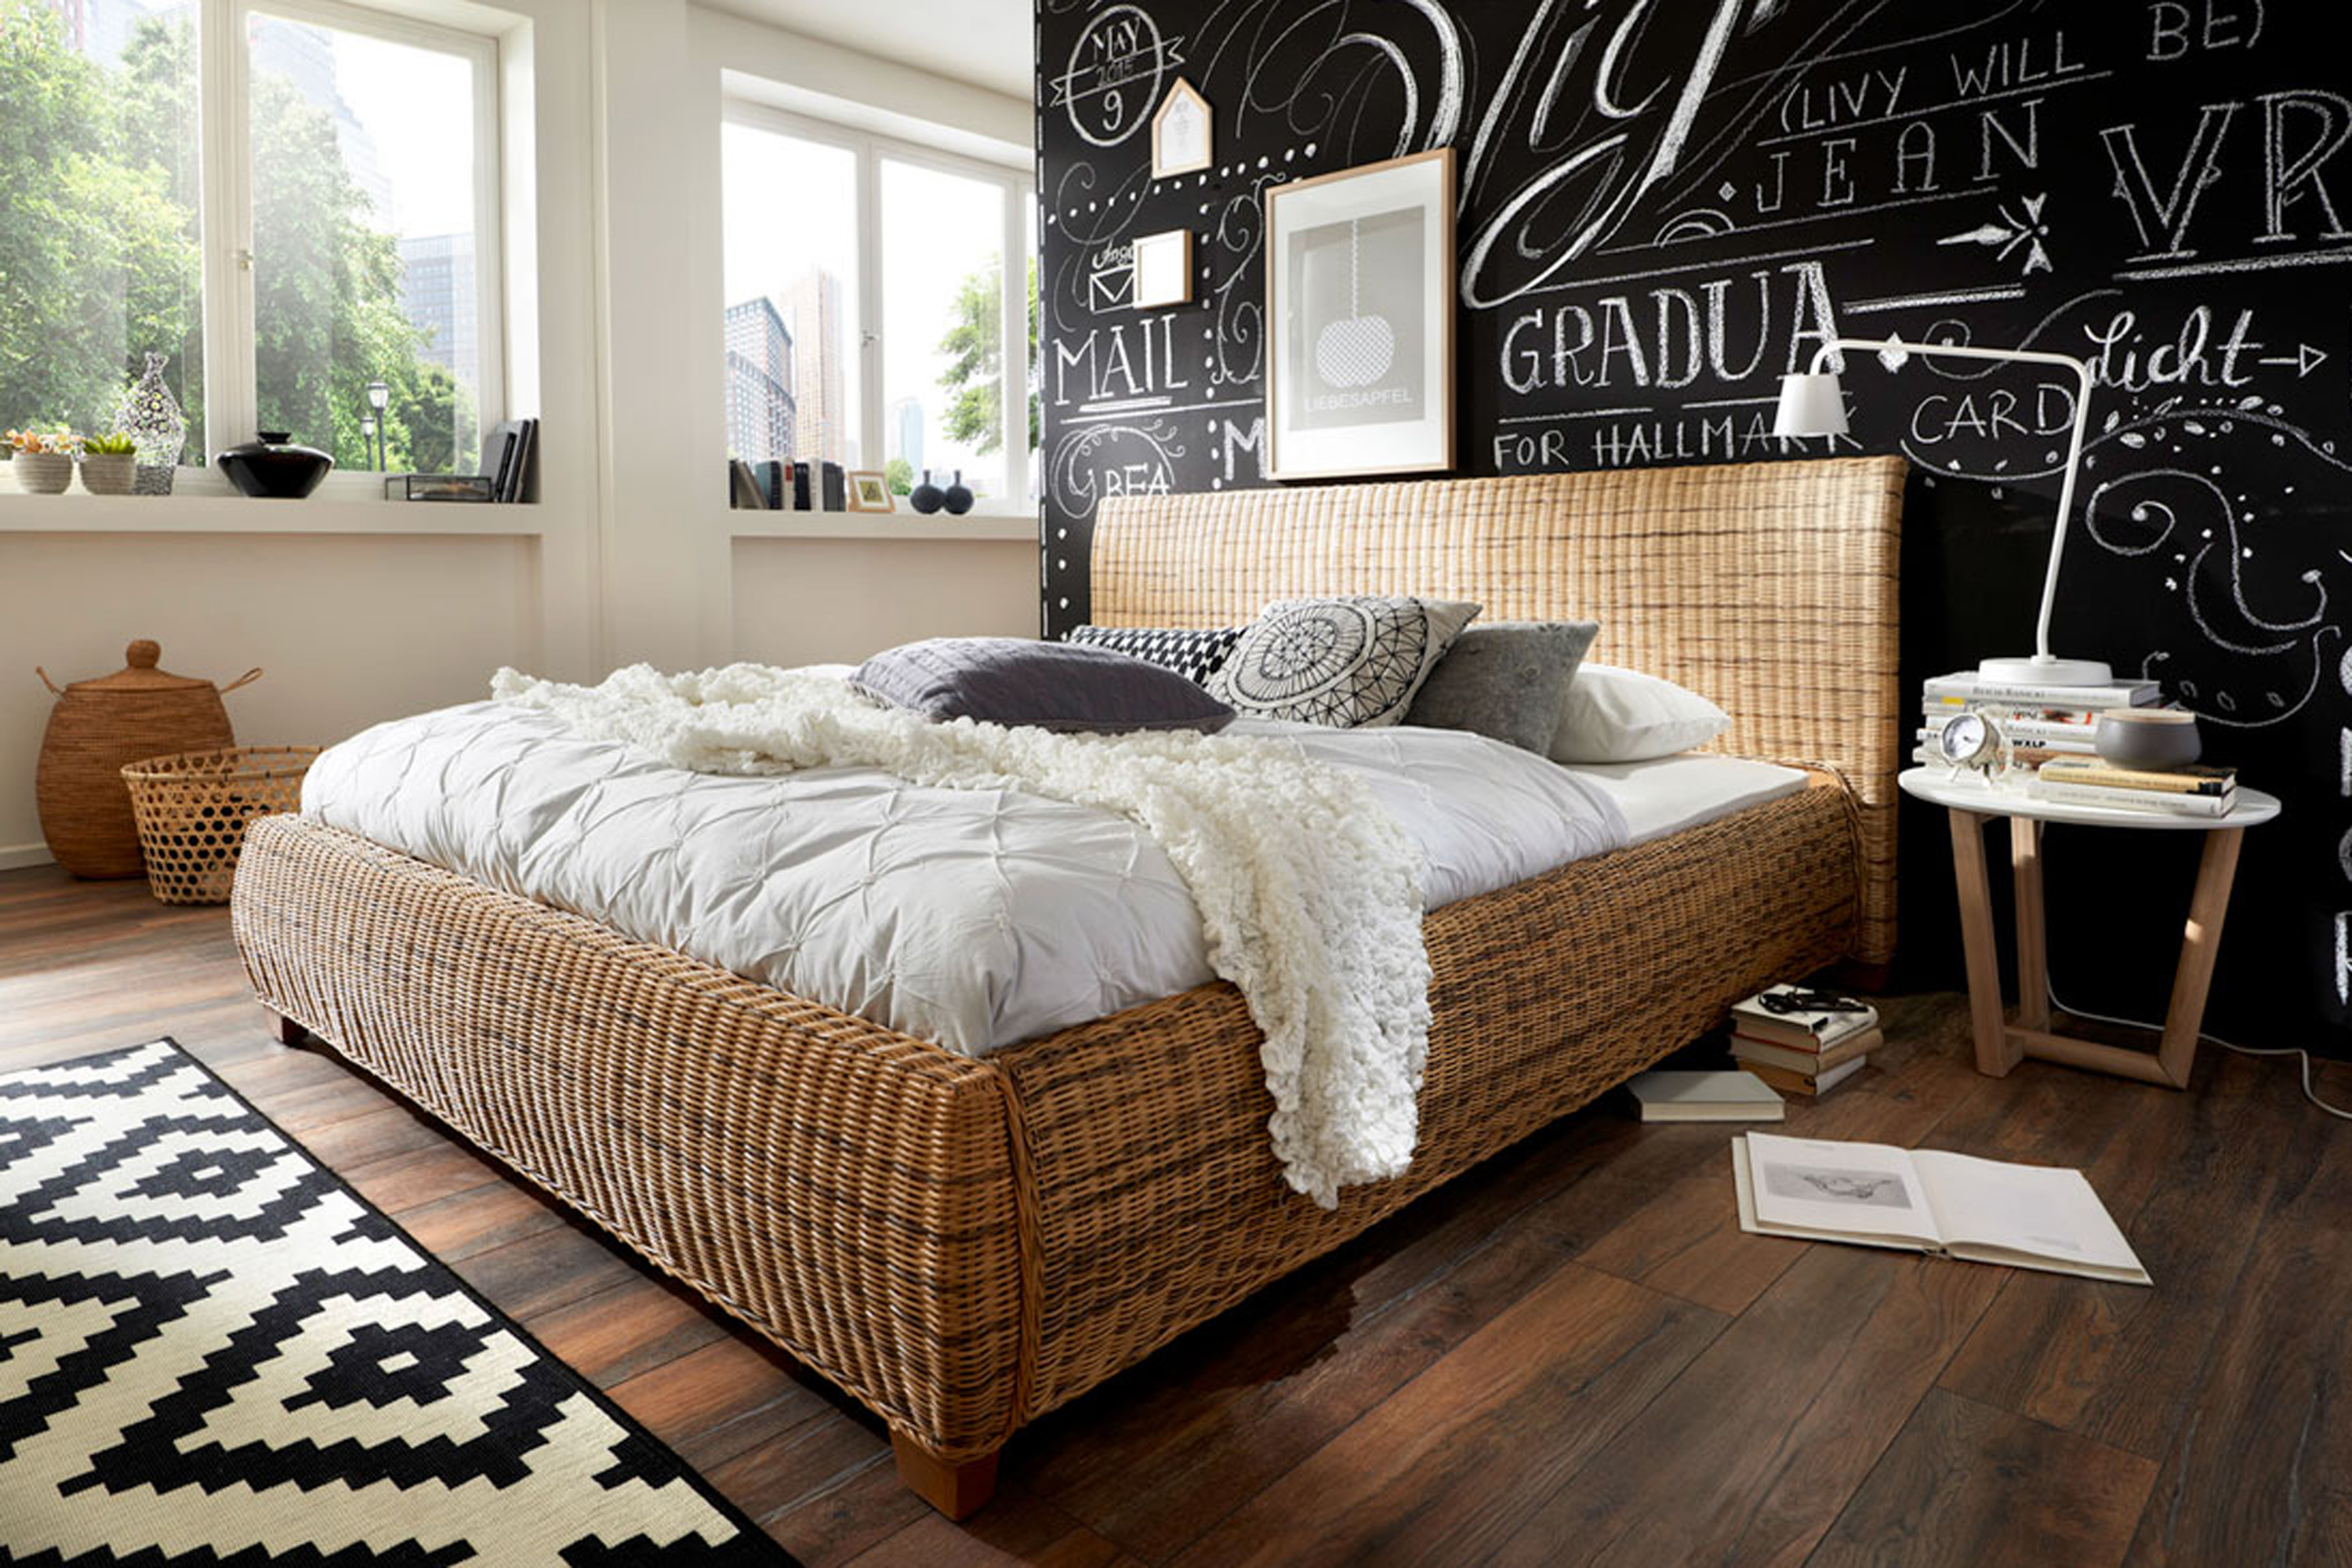 sam rattanbett doppelbett 140 x 200 cm rattan ngan 9134. Black Bedroom Furniture Sets. Home Design Ideas